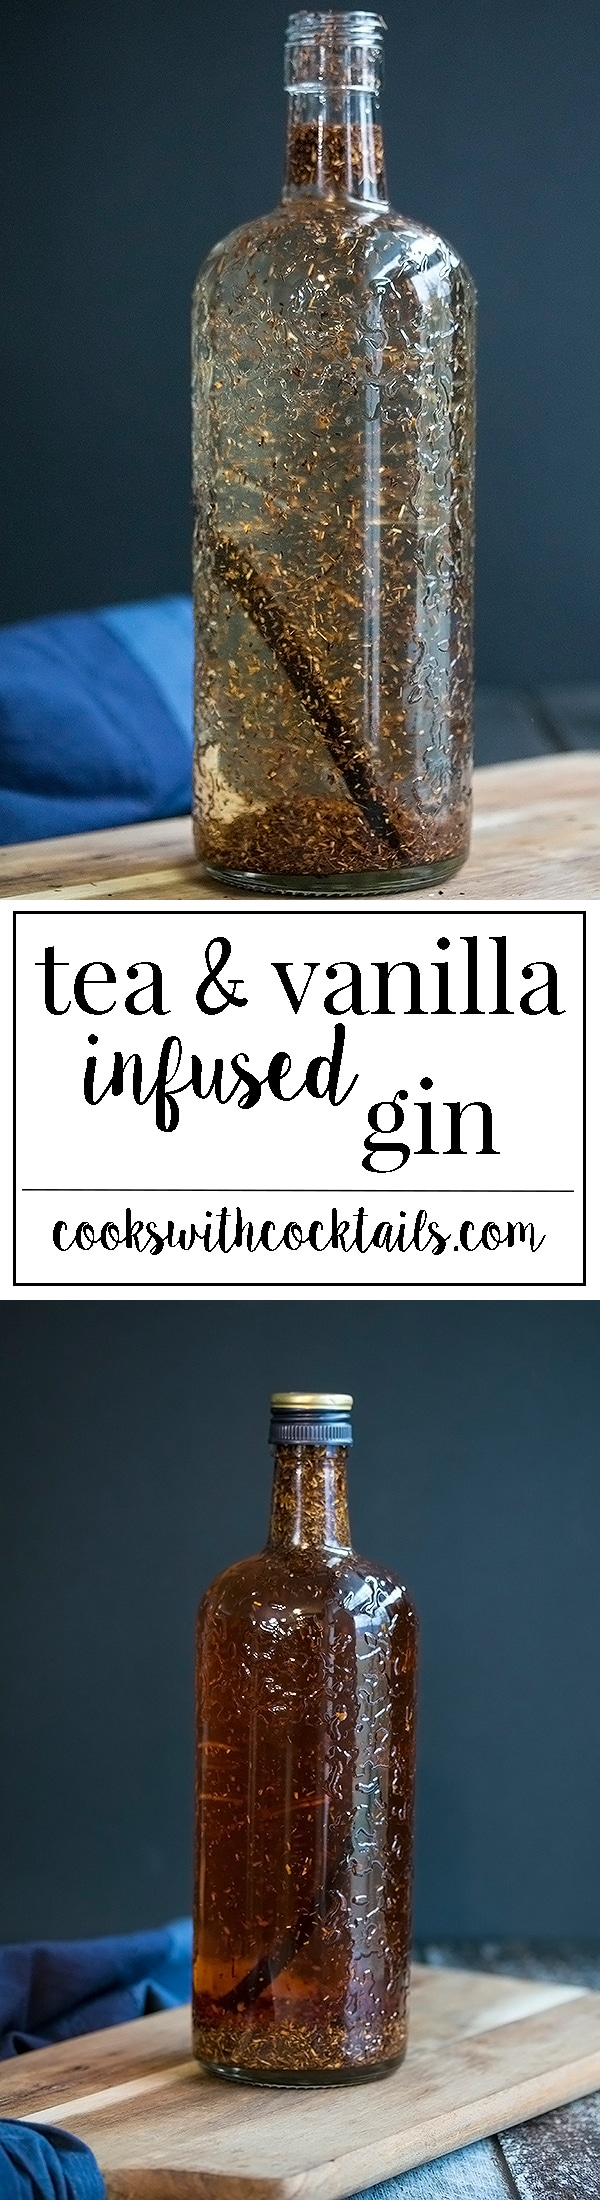 Tea infused gin with vanilla is a natural pairing to gin with its already floral notes.  This infused gin is great for hard ice teas, martinis, gin sours and many others cocktails.